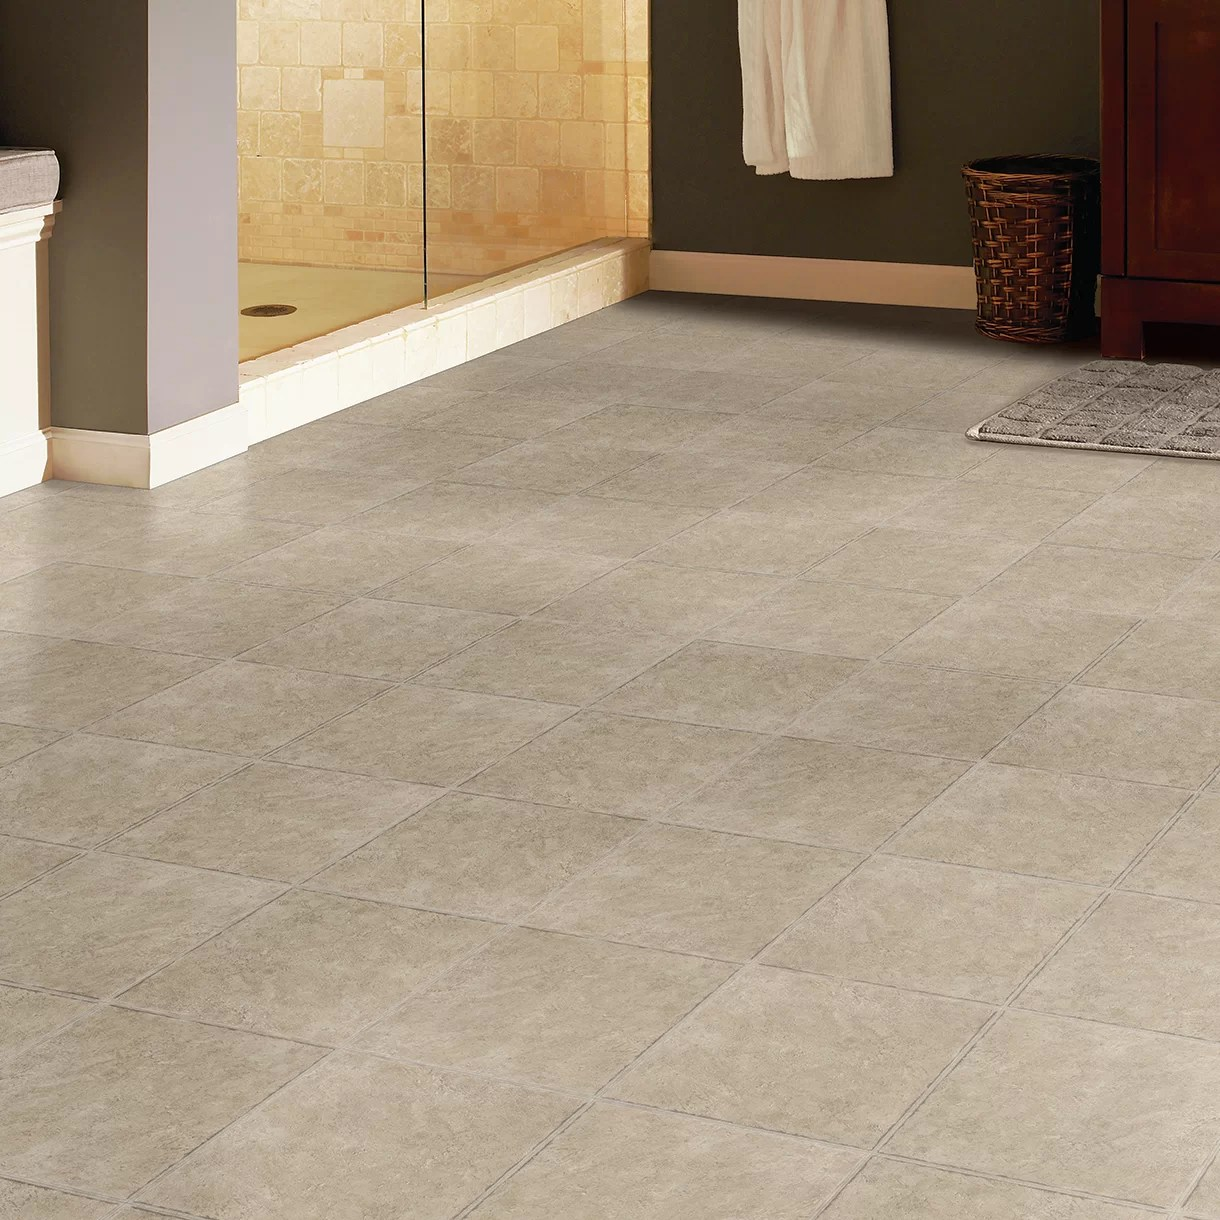 caliber grouted 12 x 12 x 0 1 mm vinyl tile